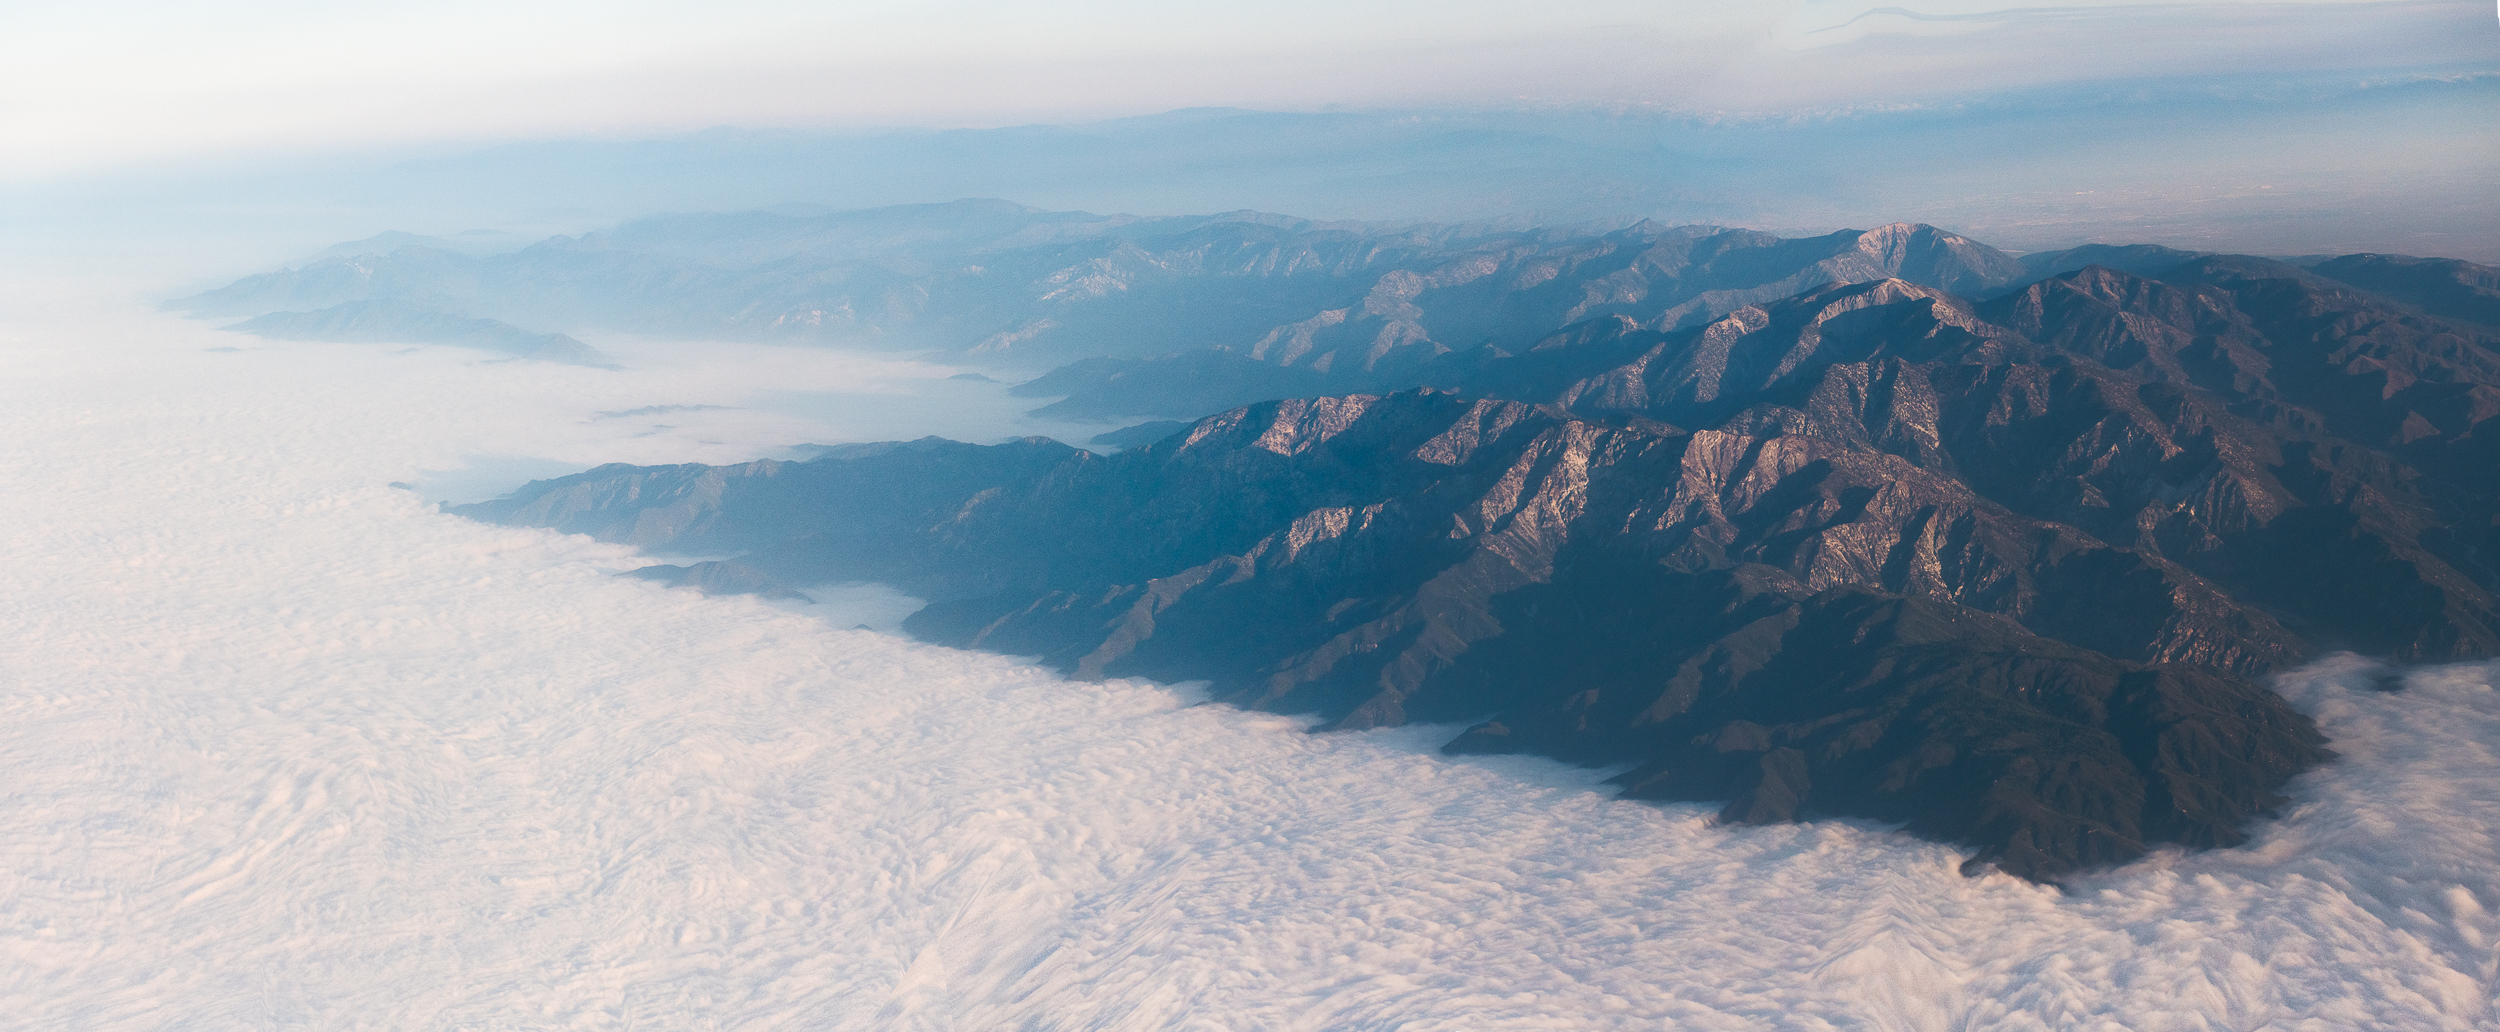 - above the clouds